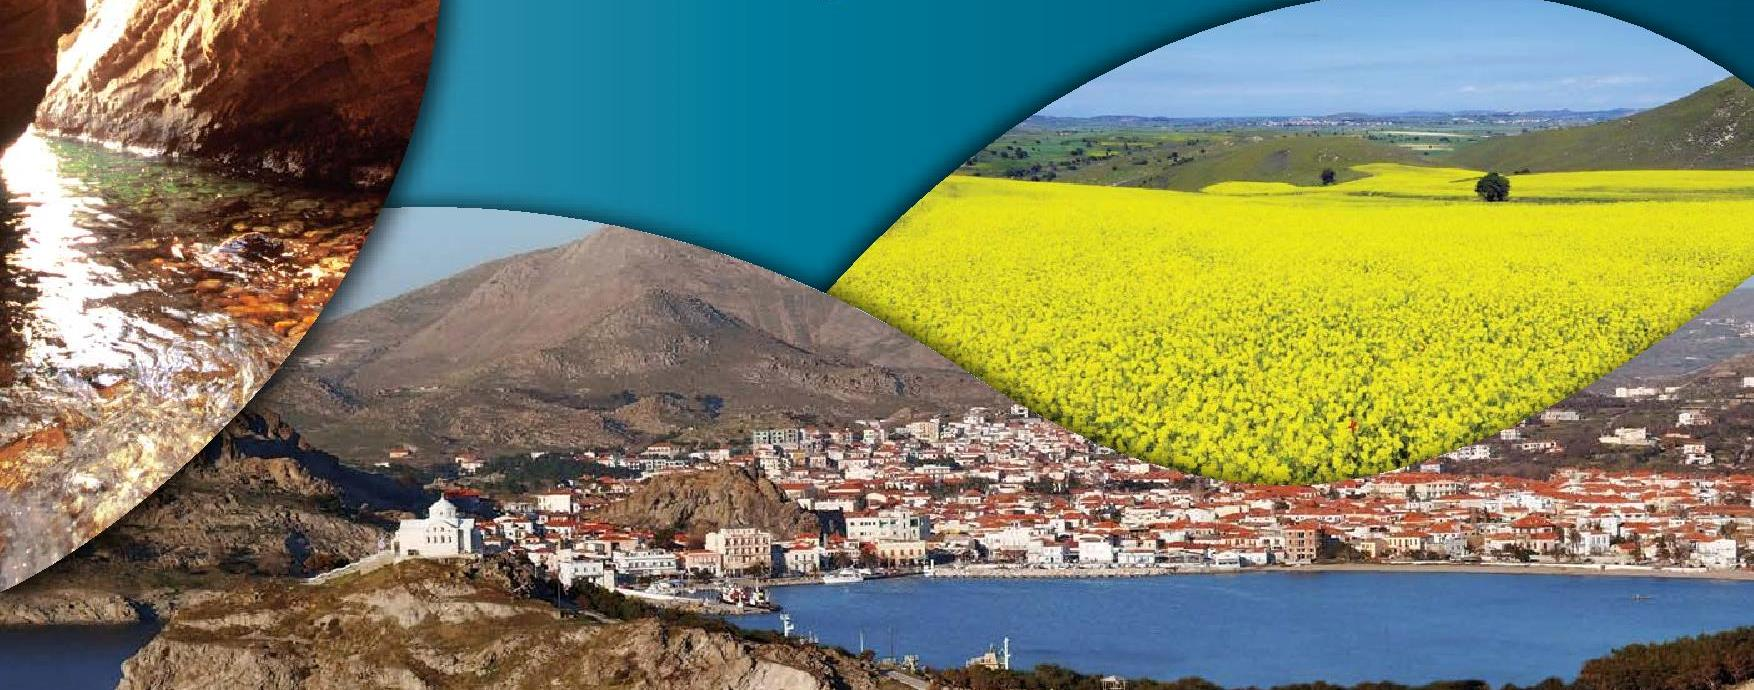 Welcome to Limnos, the Homeric Anemoessa, land of Hephaestus, the     Lemnian   smith, the land of Philoctitis, the Sophoclean character, the land of Ypsipyli and Iasonas, the mythological couple whose son became the King of Limnos.